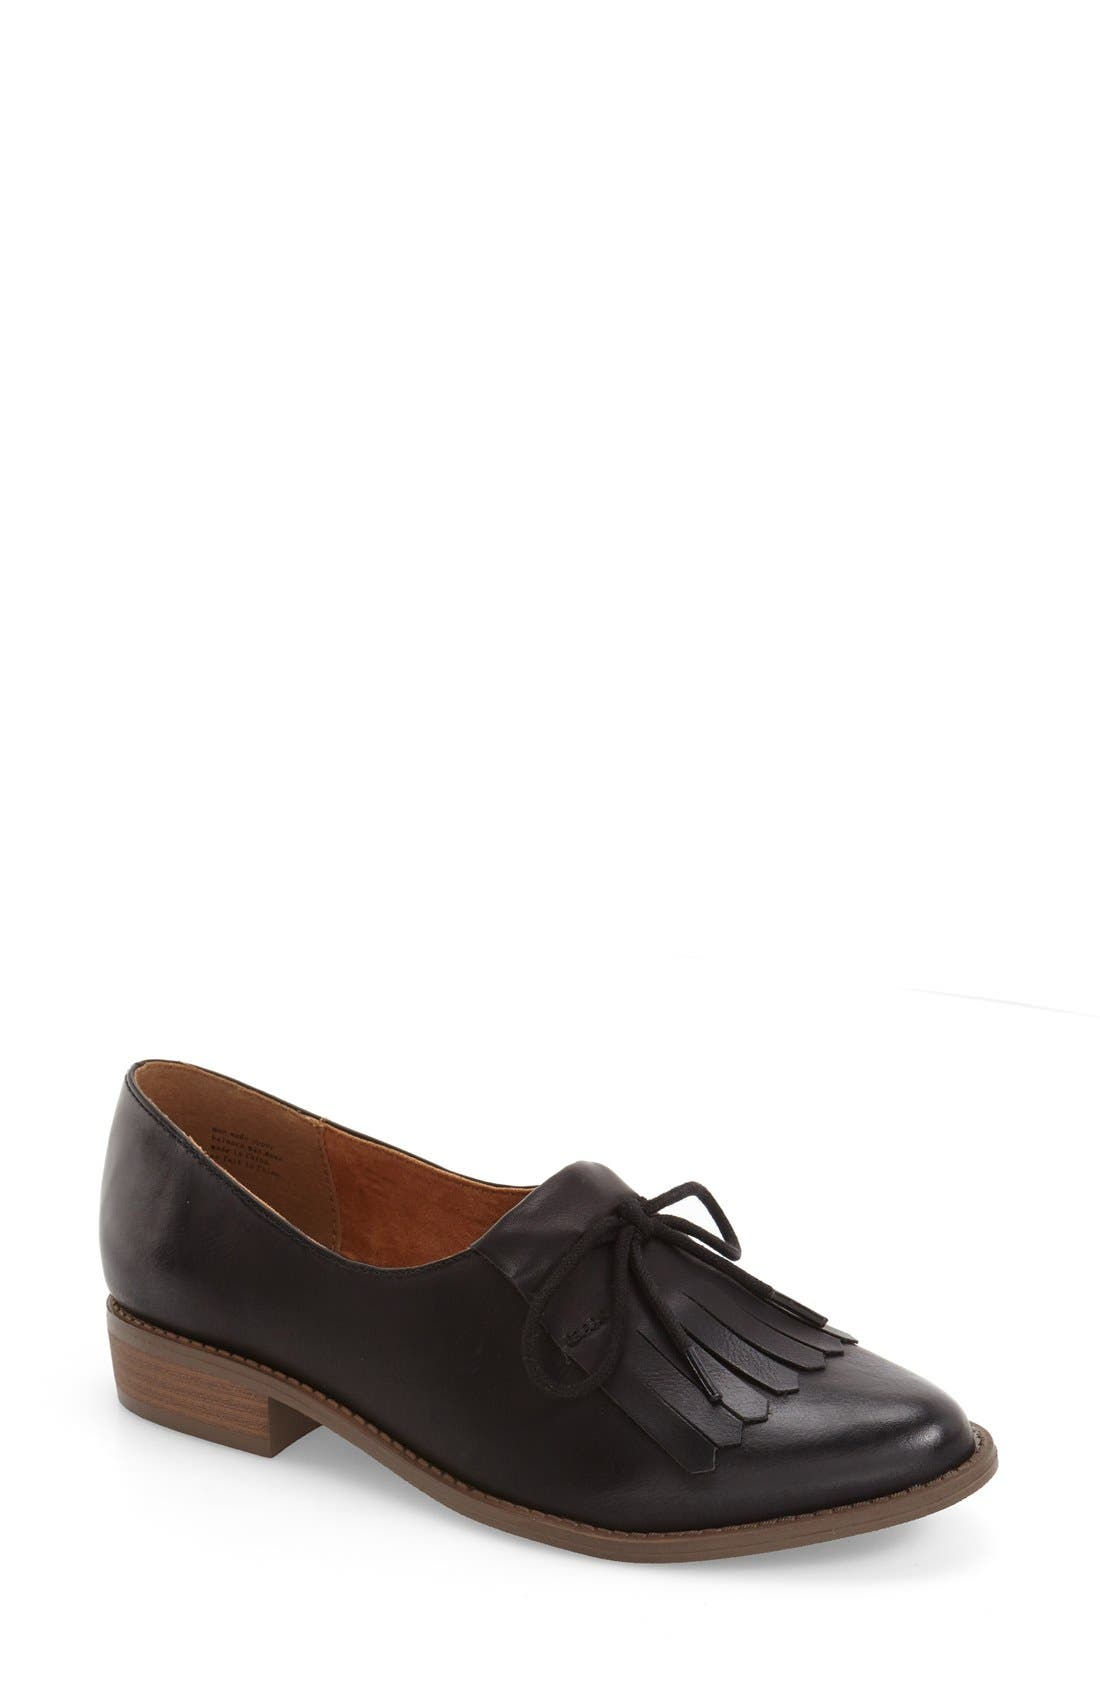 Alternate Image 1 Selected - BC Footwear 'Flash' Kiltie Flap Oxford (Women)